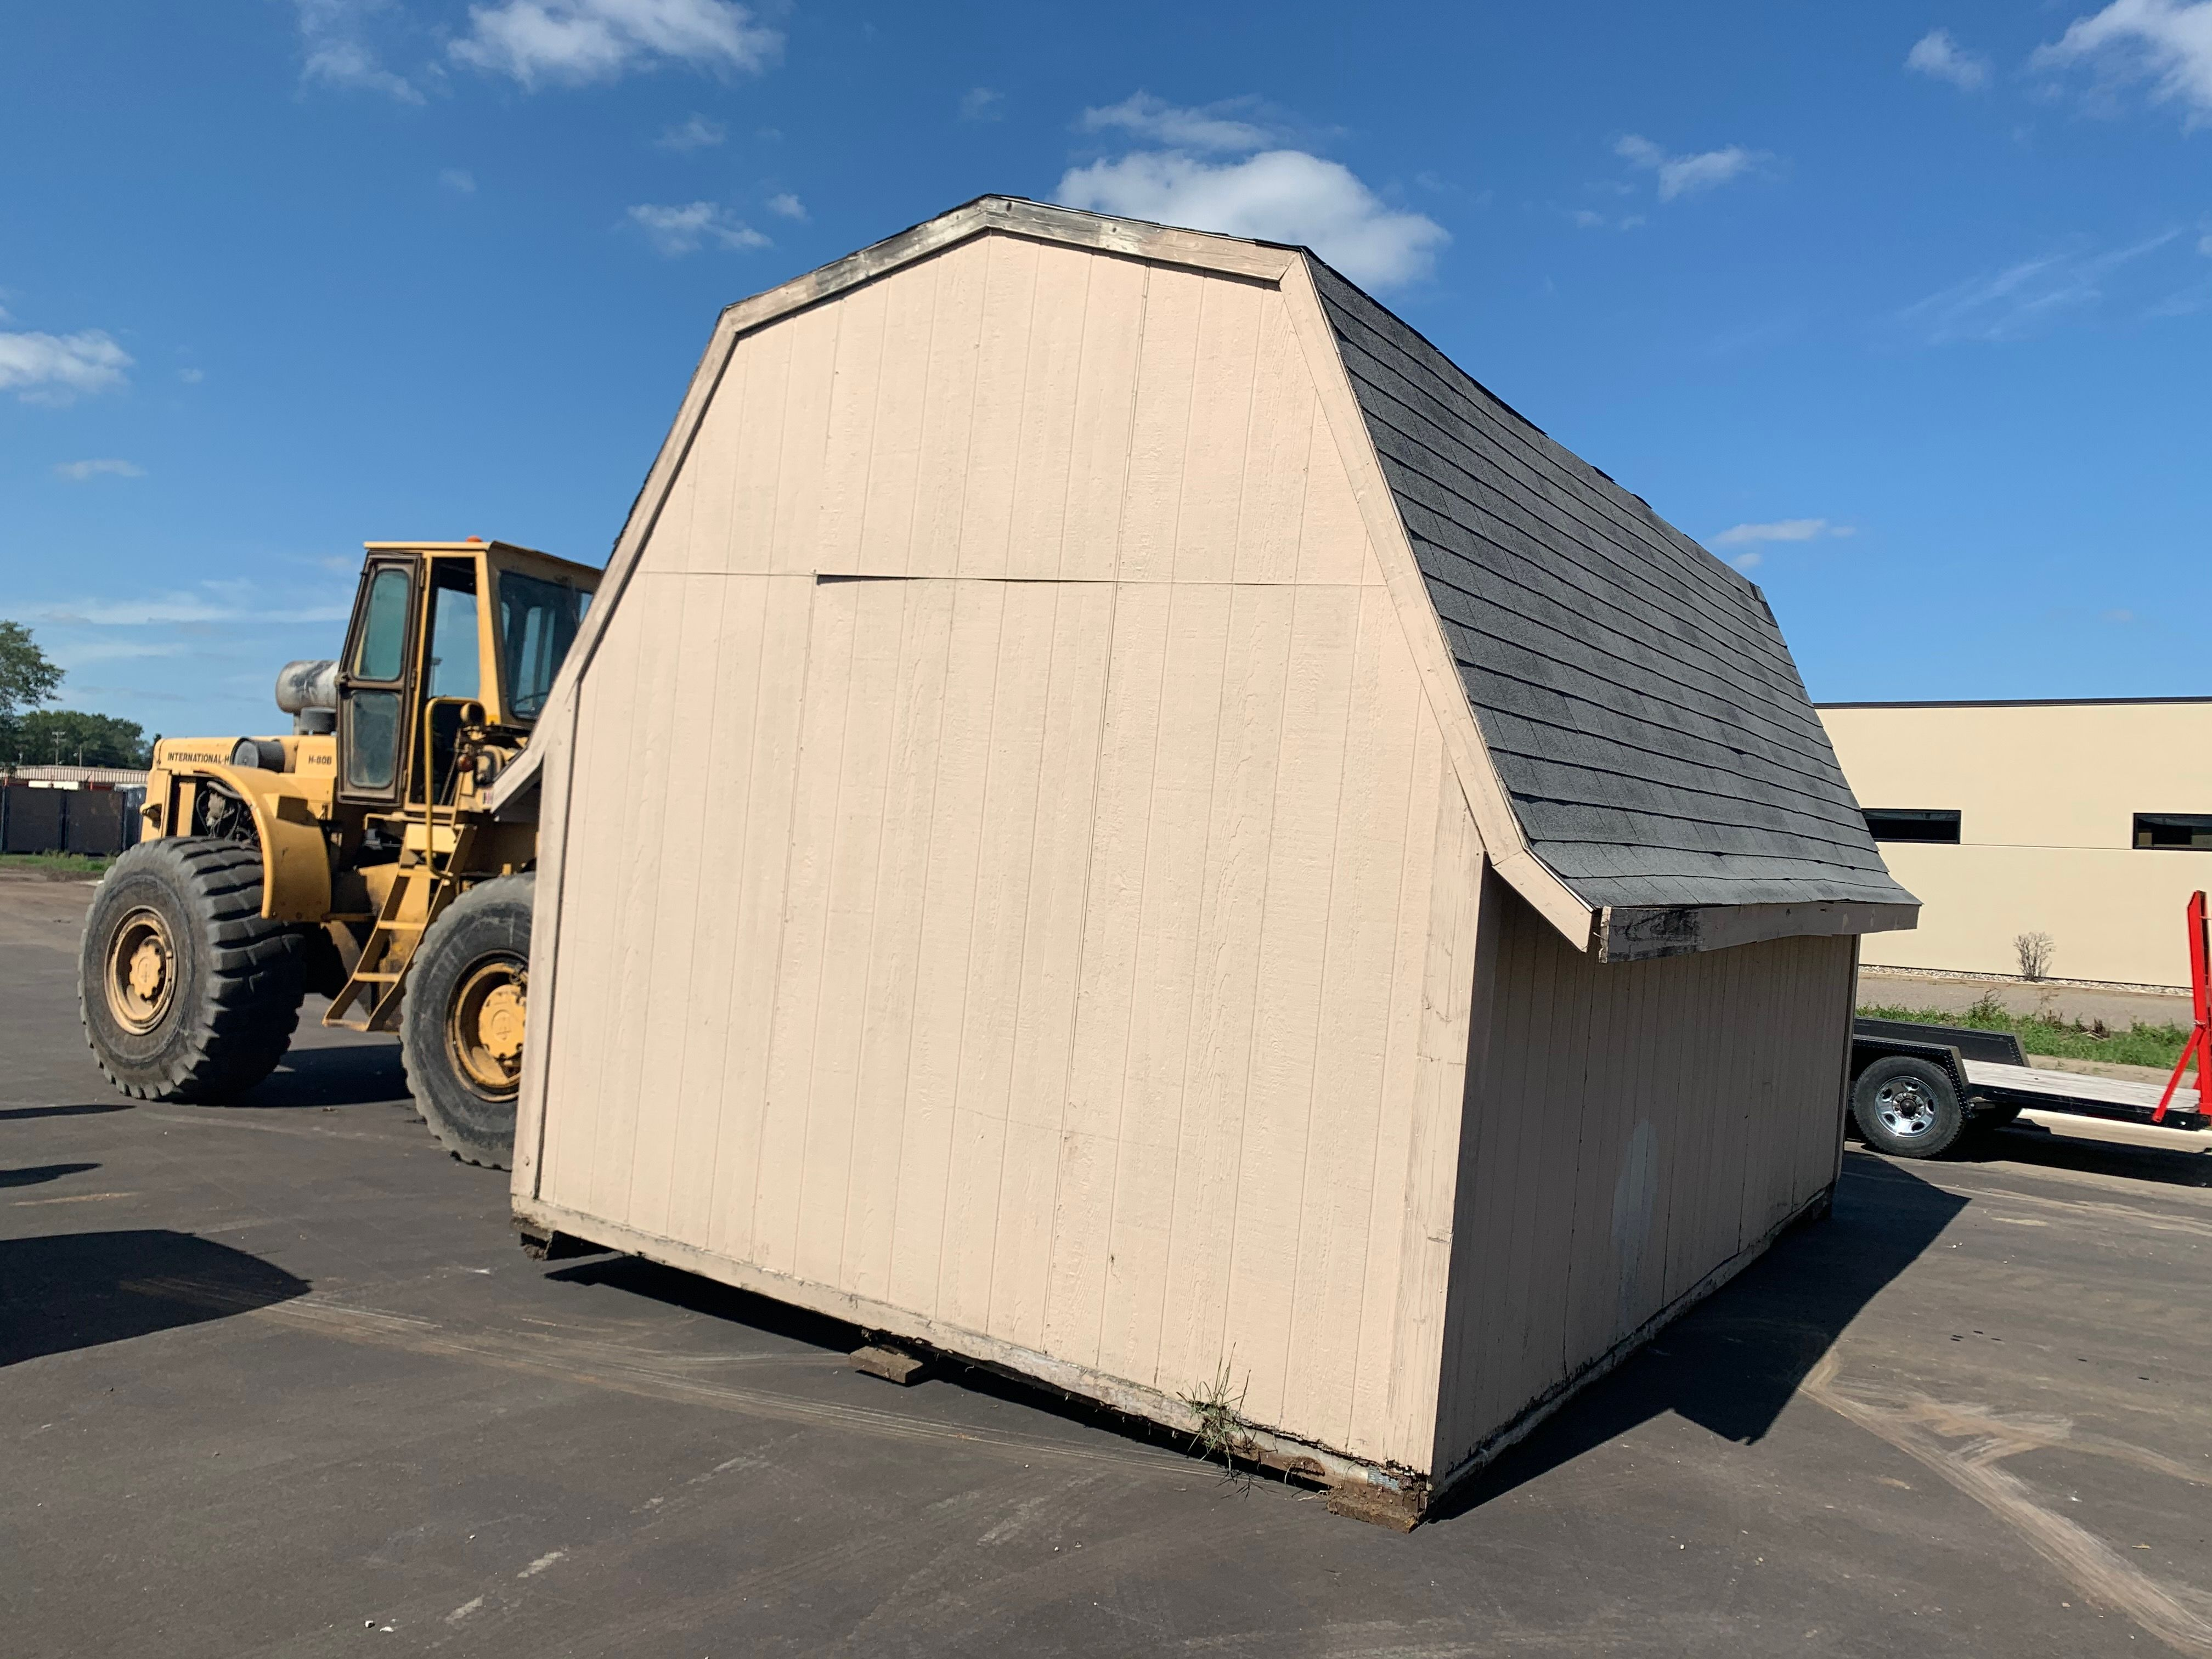 Sept. 10, 2020 - moving the shed